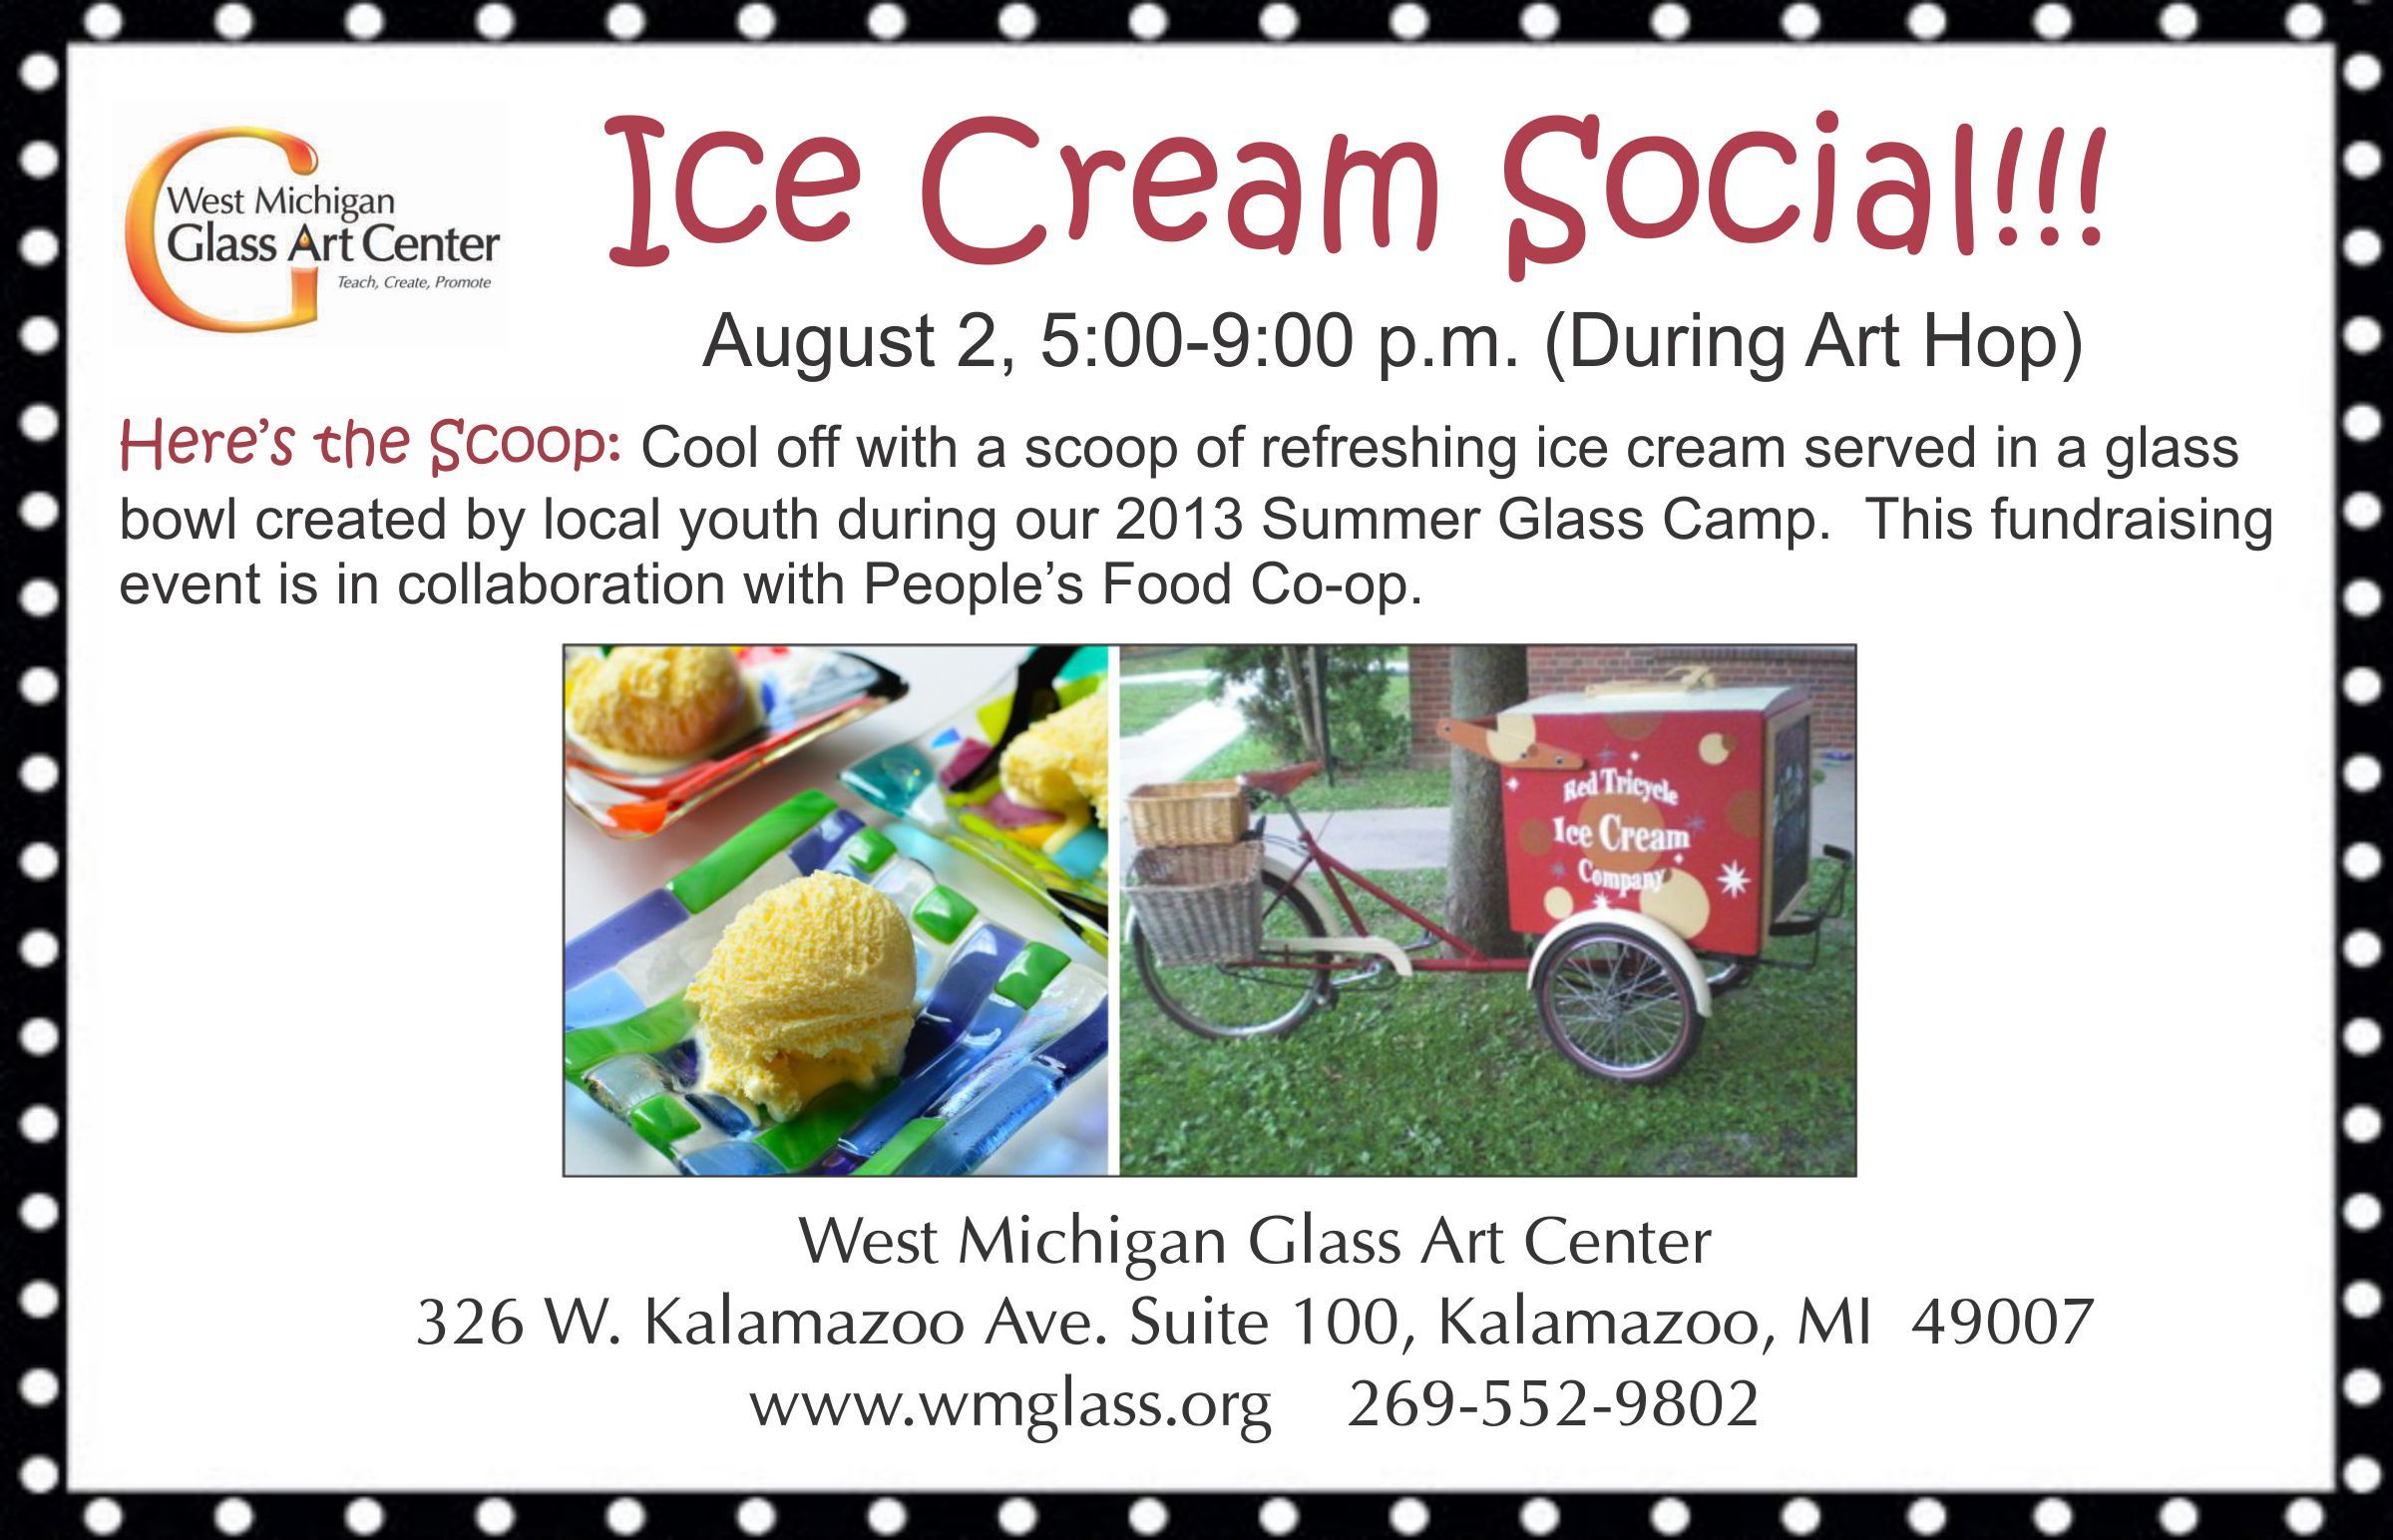 Happening during Art Hop next Friday, August 2nd, 5-9pm!